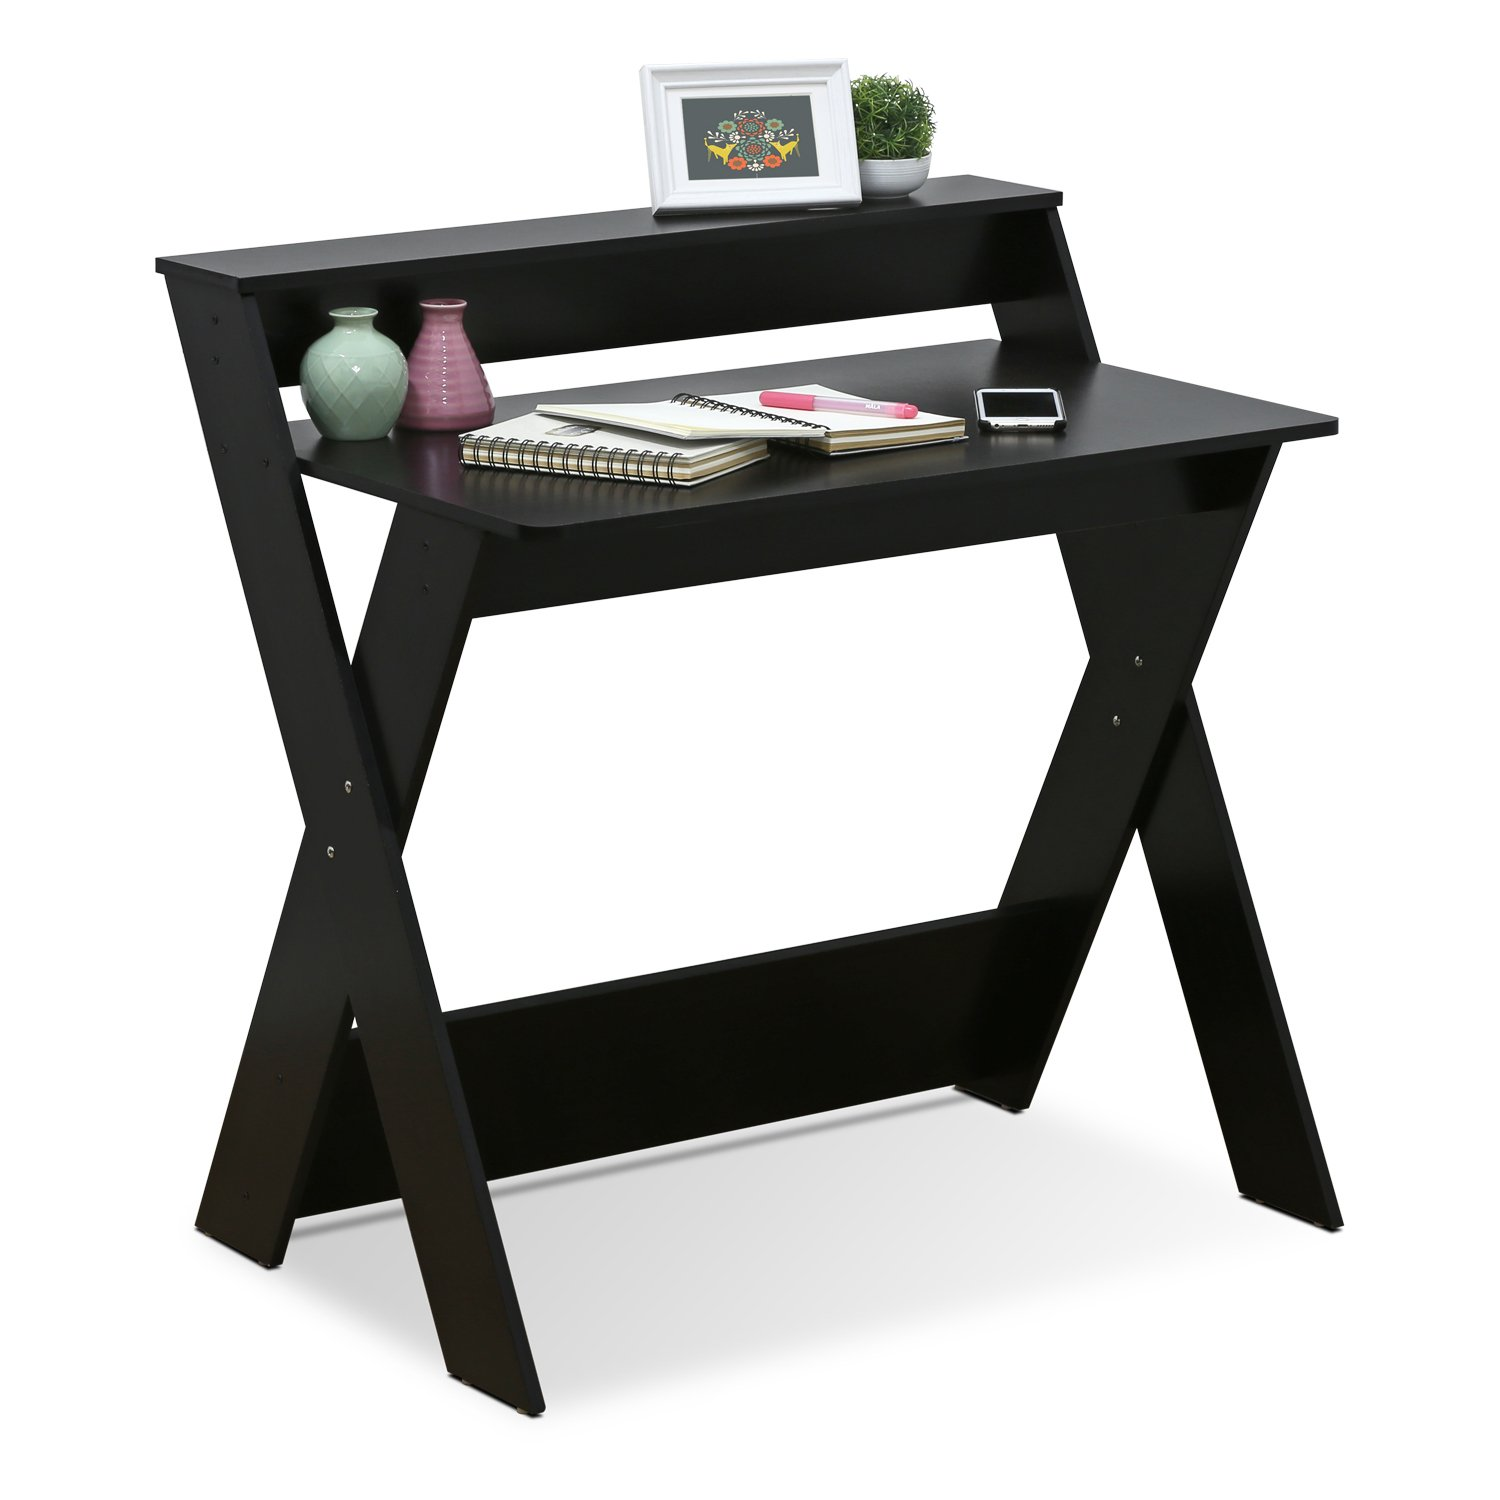 Furinno 16047EX Simplistic Criss-Crossed Home Office Study Desk by Furinno (Image #4)